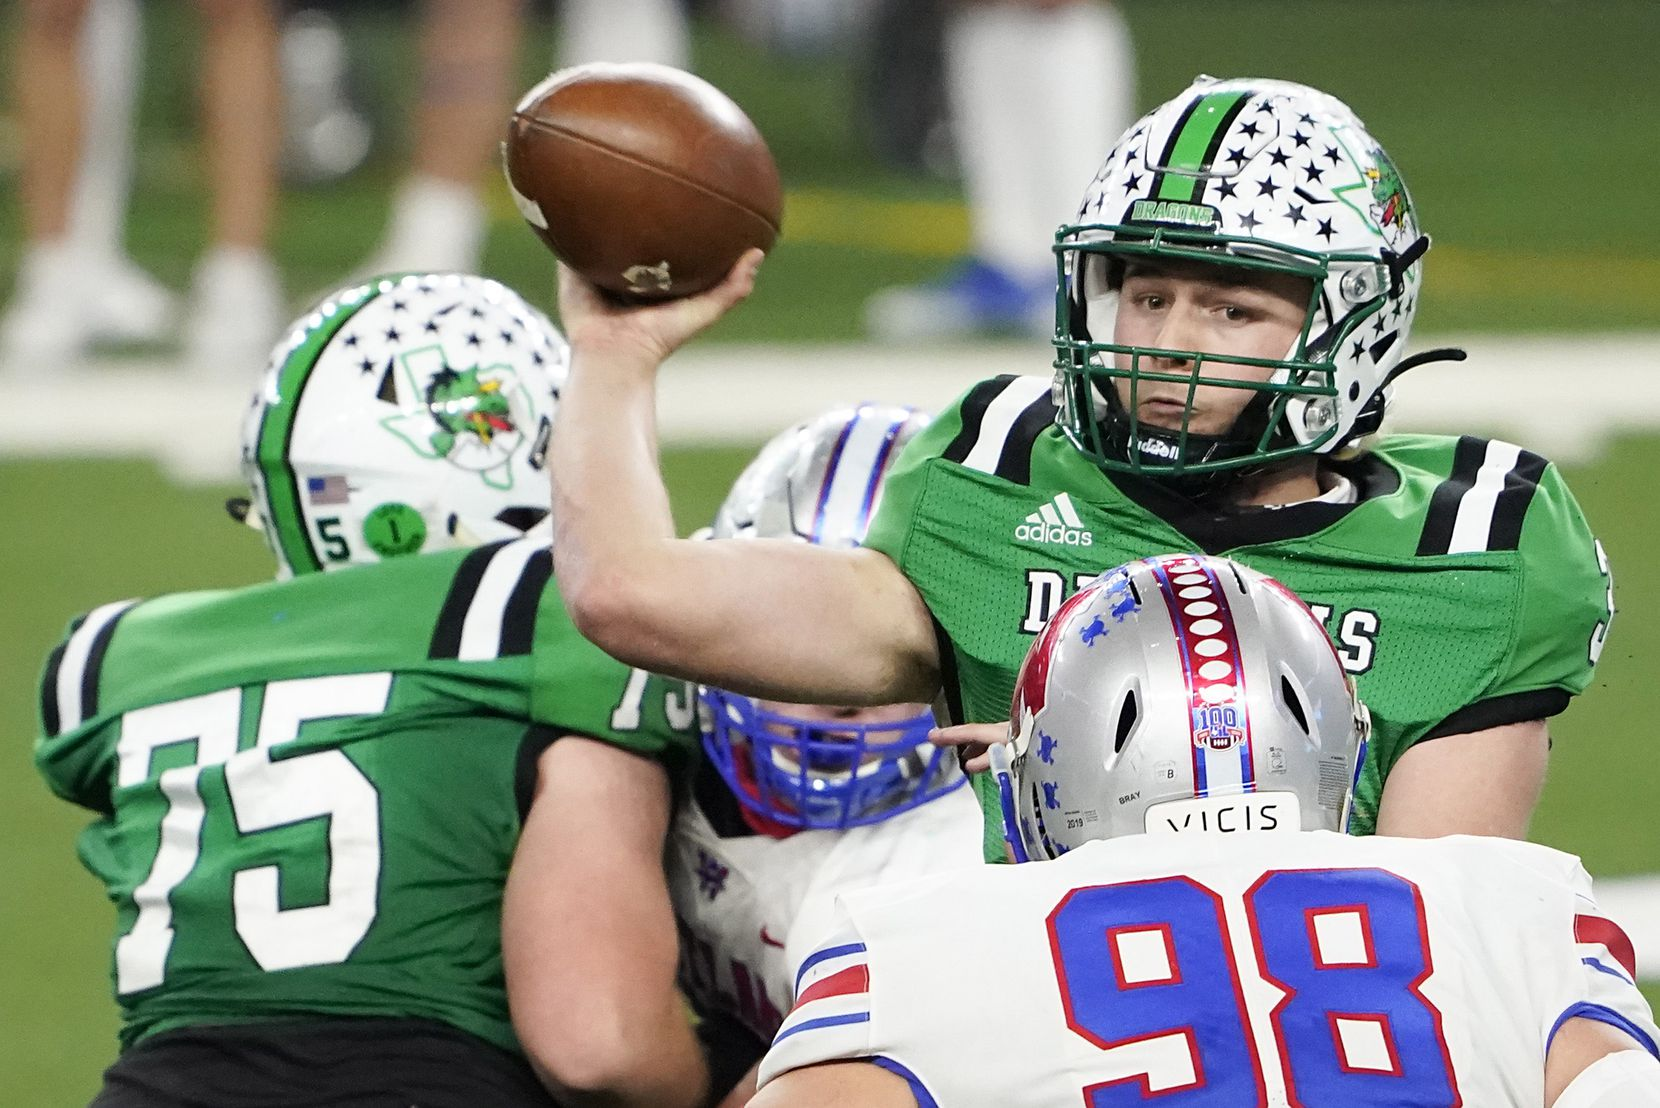 Southlake Carroll quarterback Quinn Ewers (3) throws a pass under pressure from Austin Westlake defensive lineman Haden Bray (98) during the fourth quarter of the Class 6A Division I state football championship game at AT&T Stadium on Saturday, Jan. 16, 2021, in Arlington, Texas. Westlake won the game 52-34.